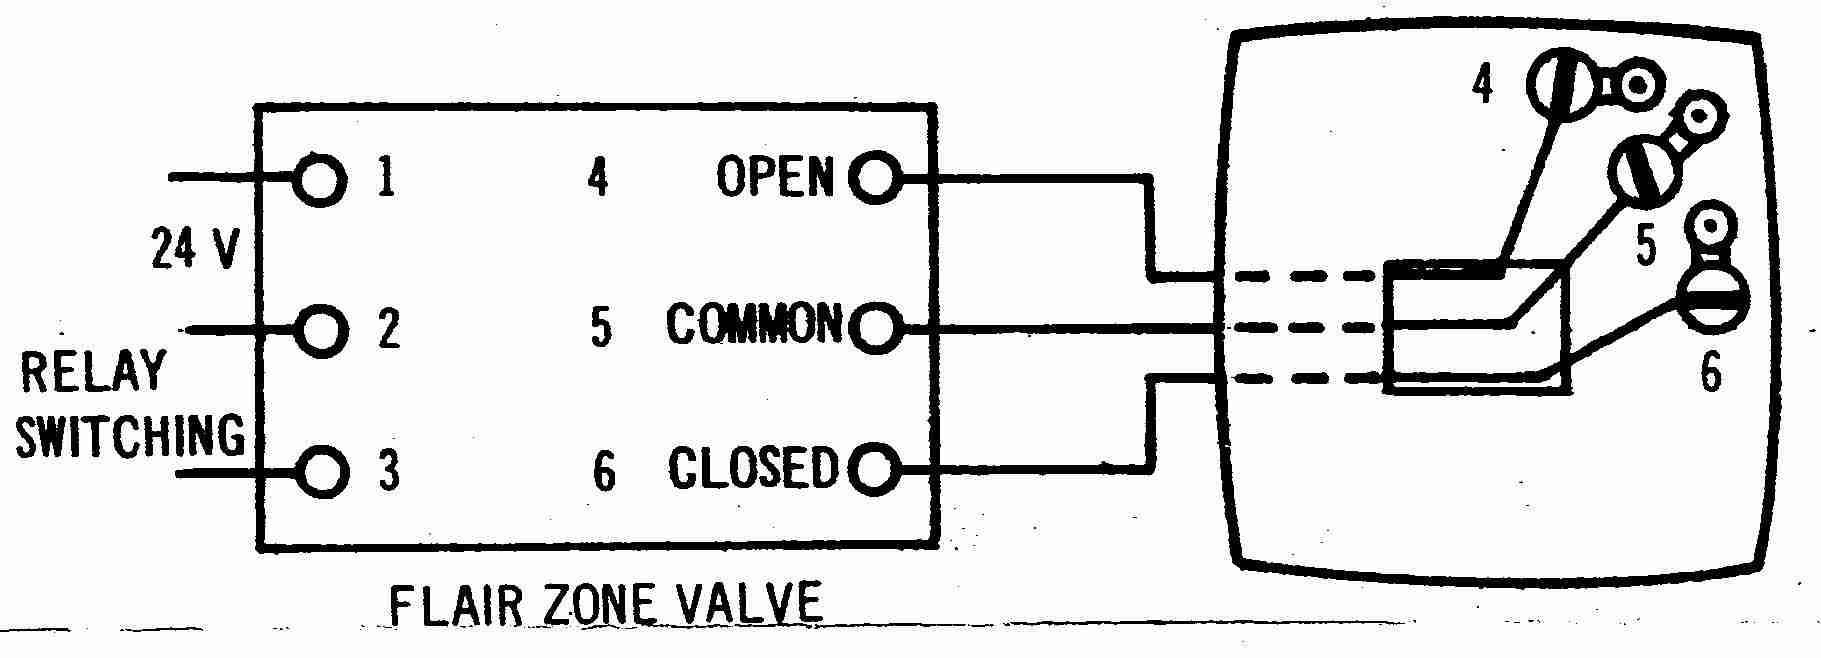 Thermostat Wiring Diagram 4 Wire from 2020cadillac.com